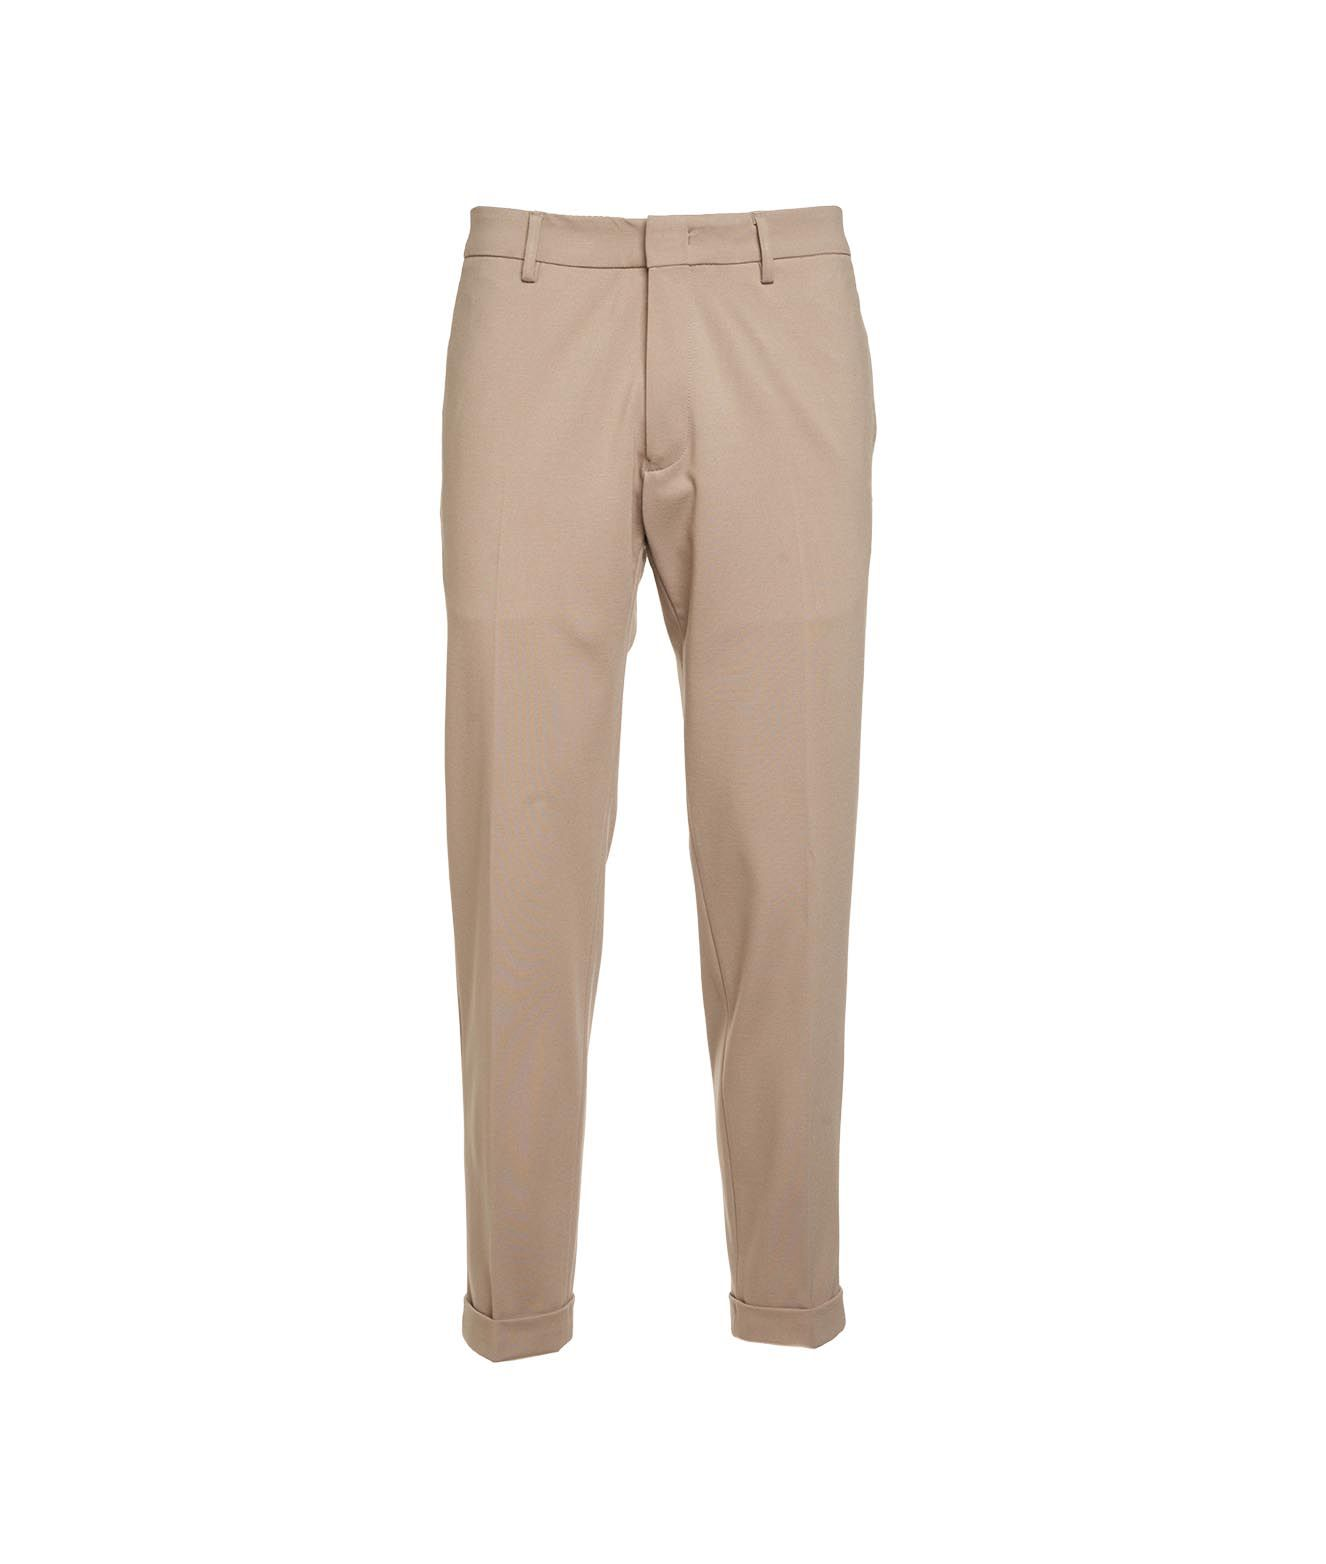 Paolo Pecora TROUSERS WITH CREASE